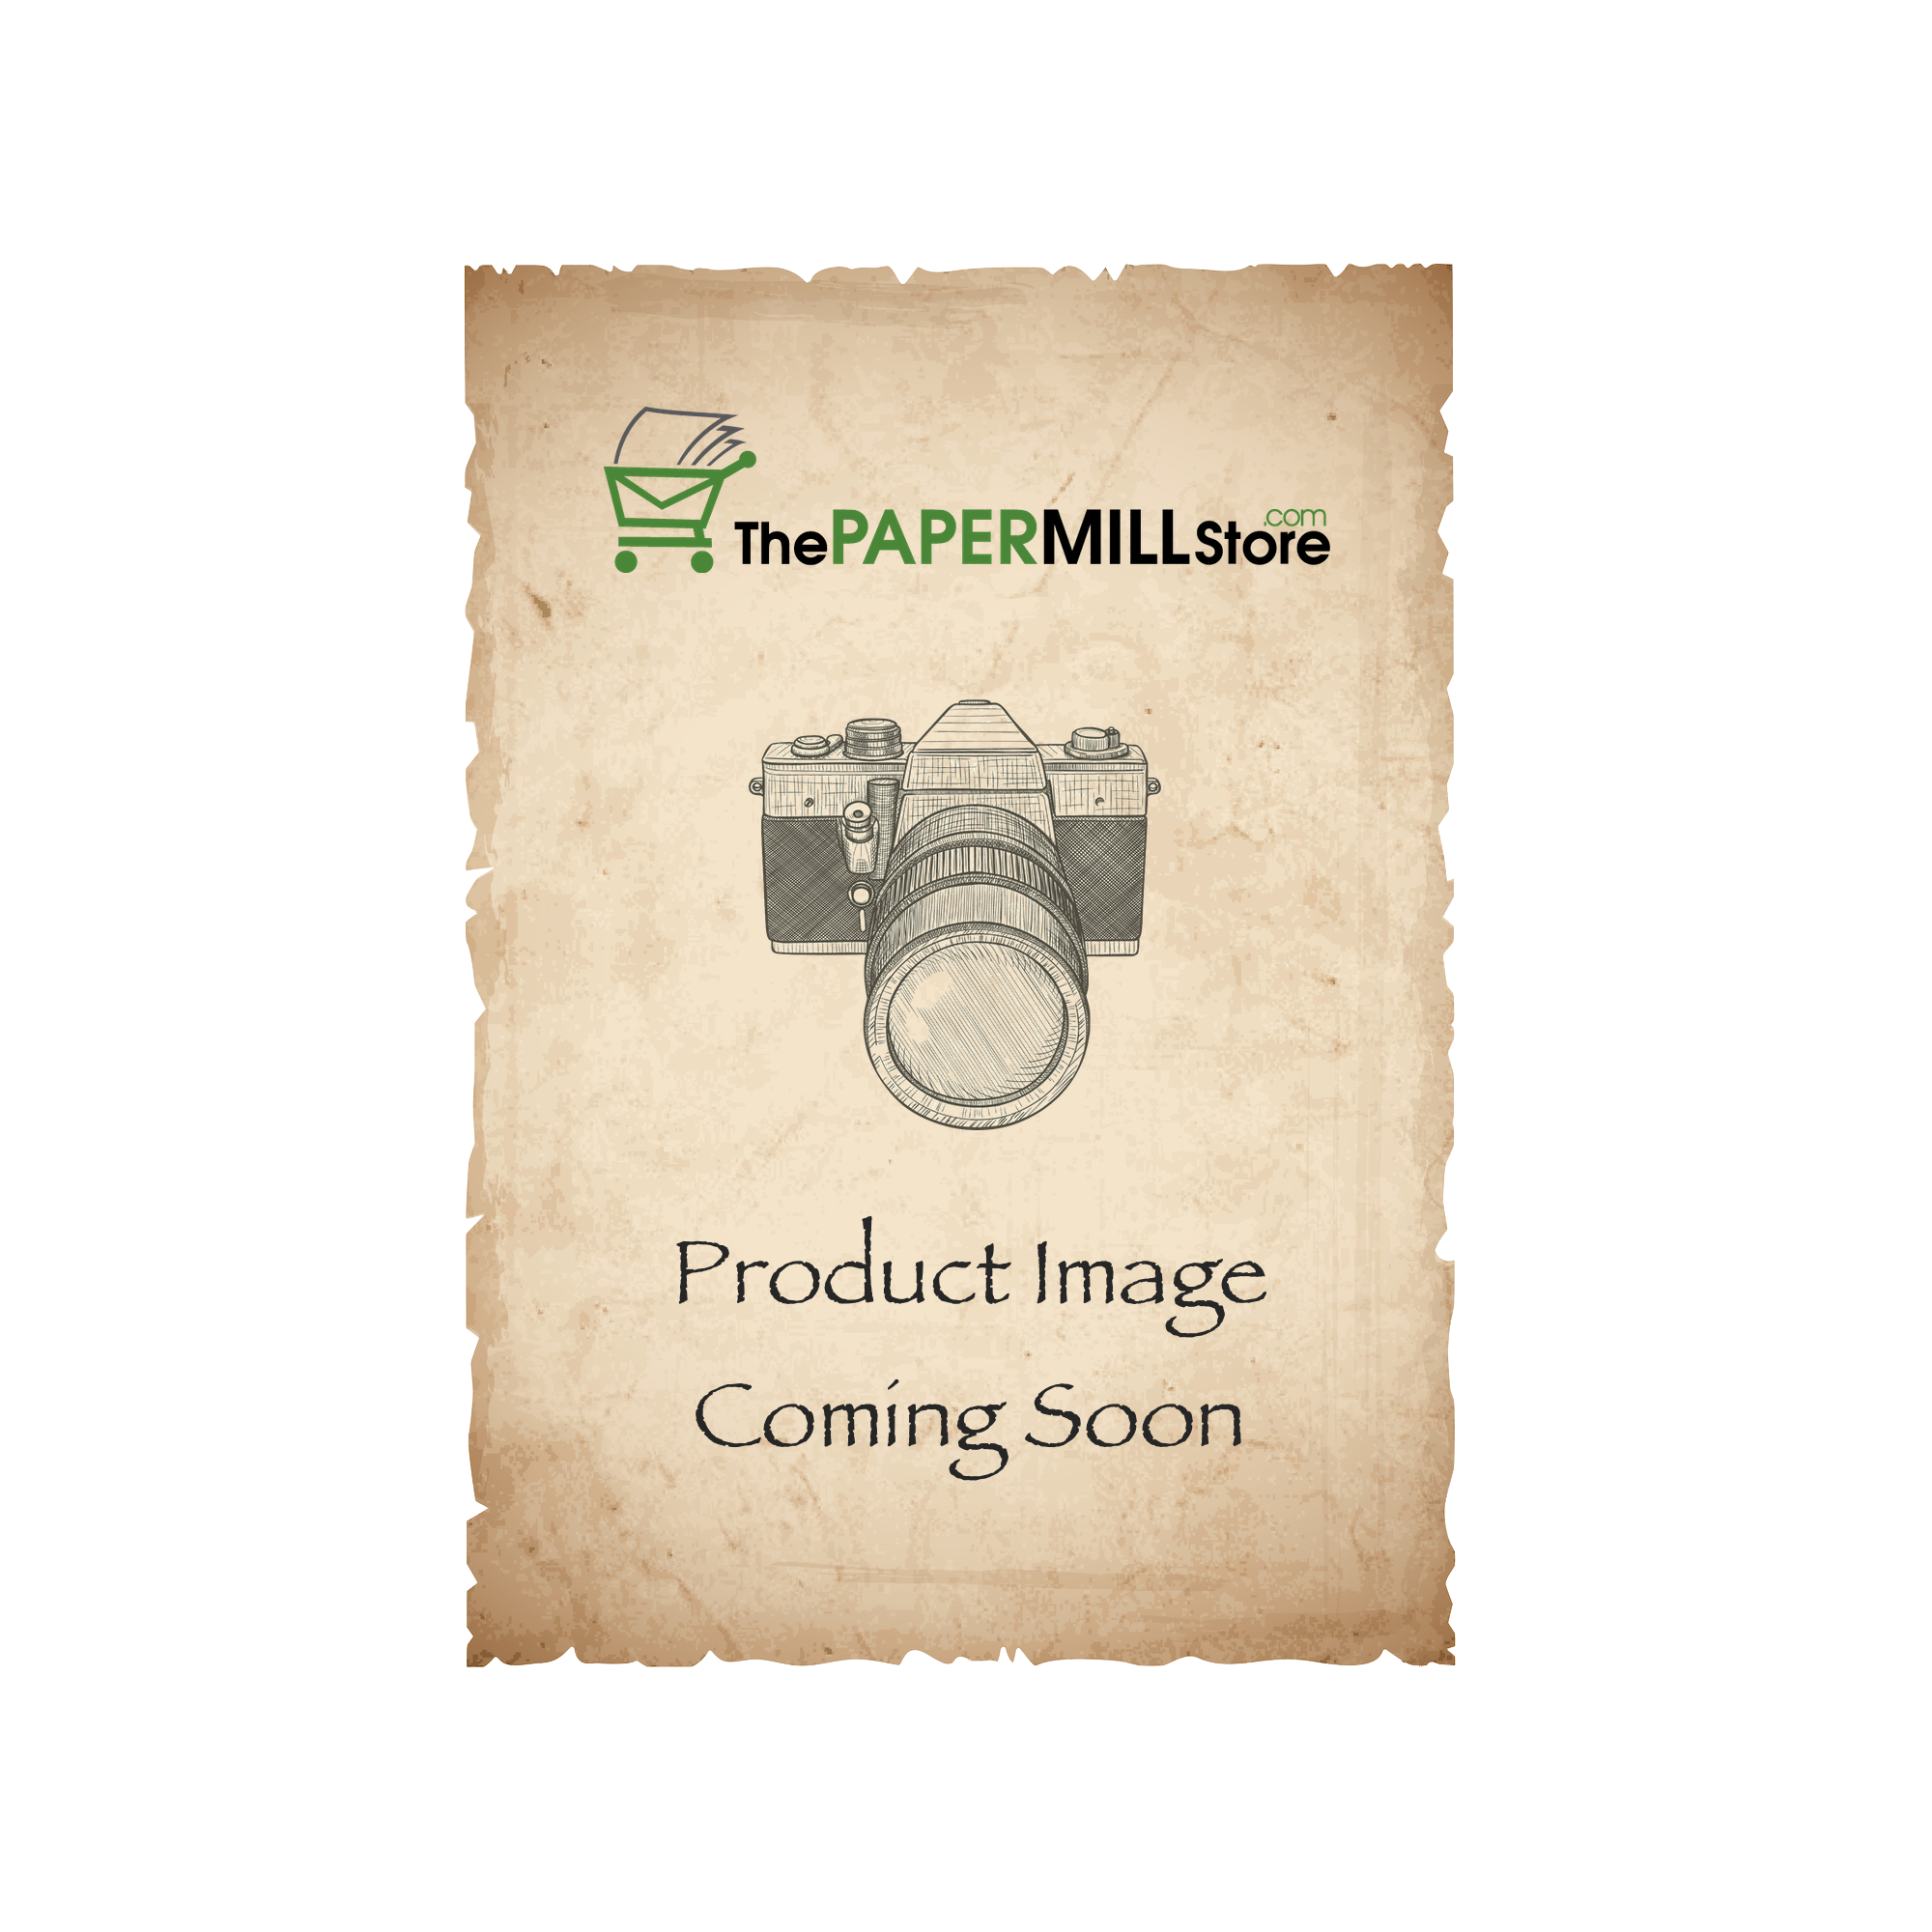 Loop Inxwell i-Tone Eco Cream Card Stock - 19 x 13 in 80 lb Cover Vellum  100% Recycled 250 per Package